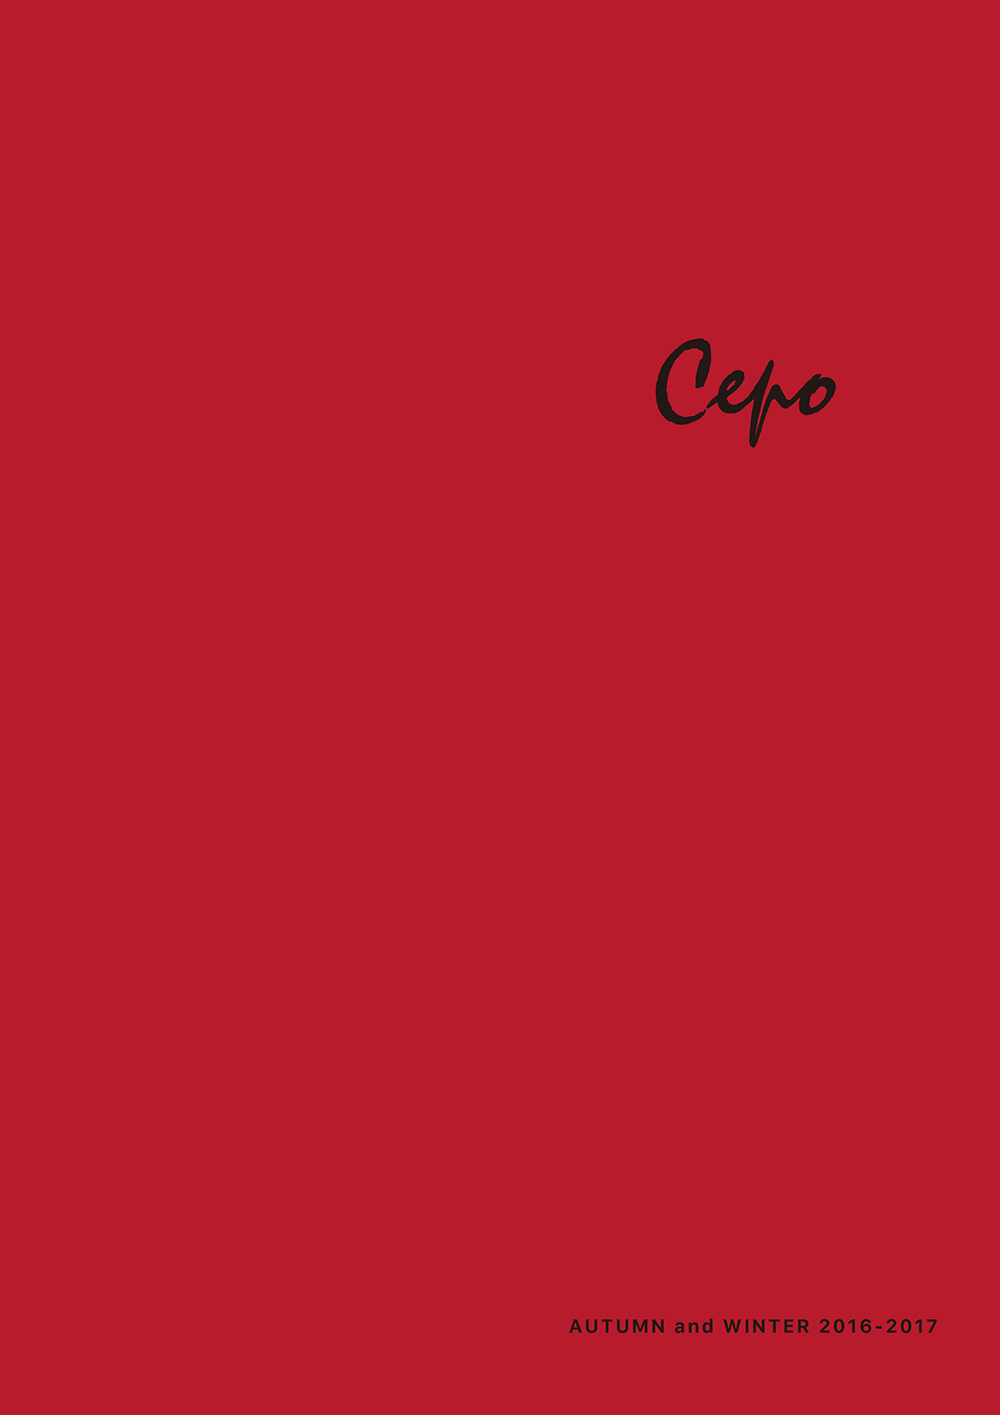 Cepo AUTUMN and WINTER 2016-2017